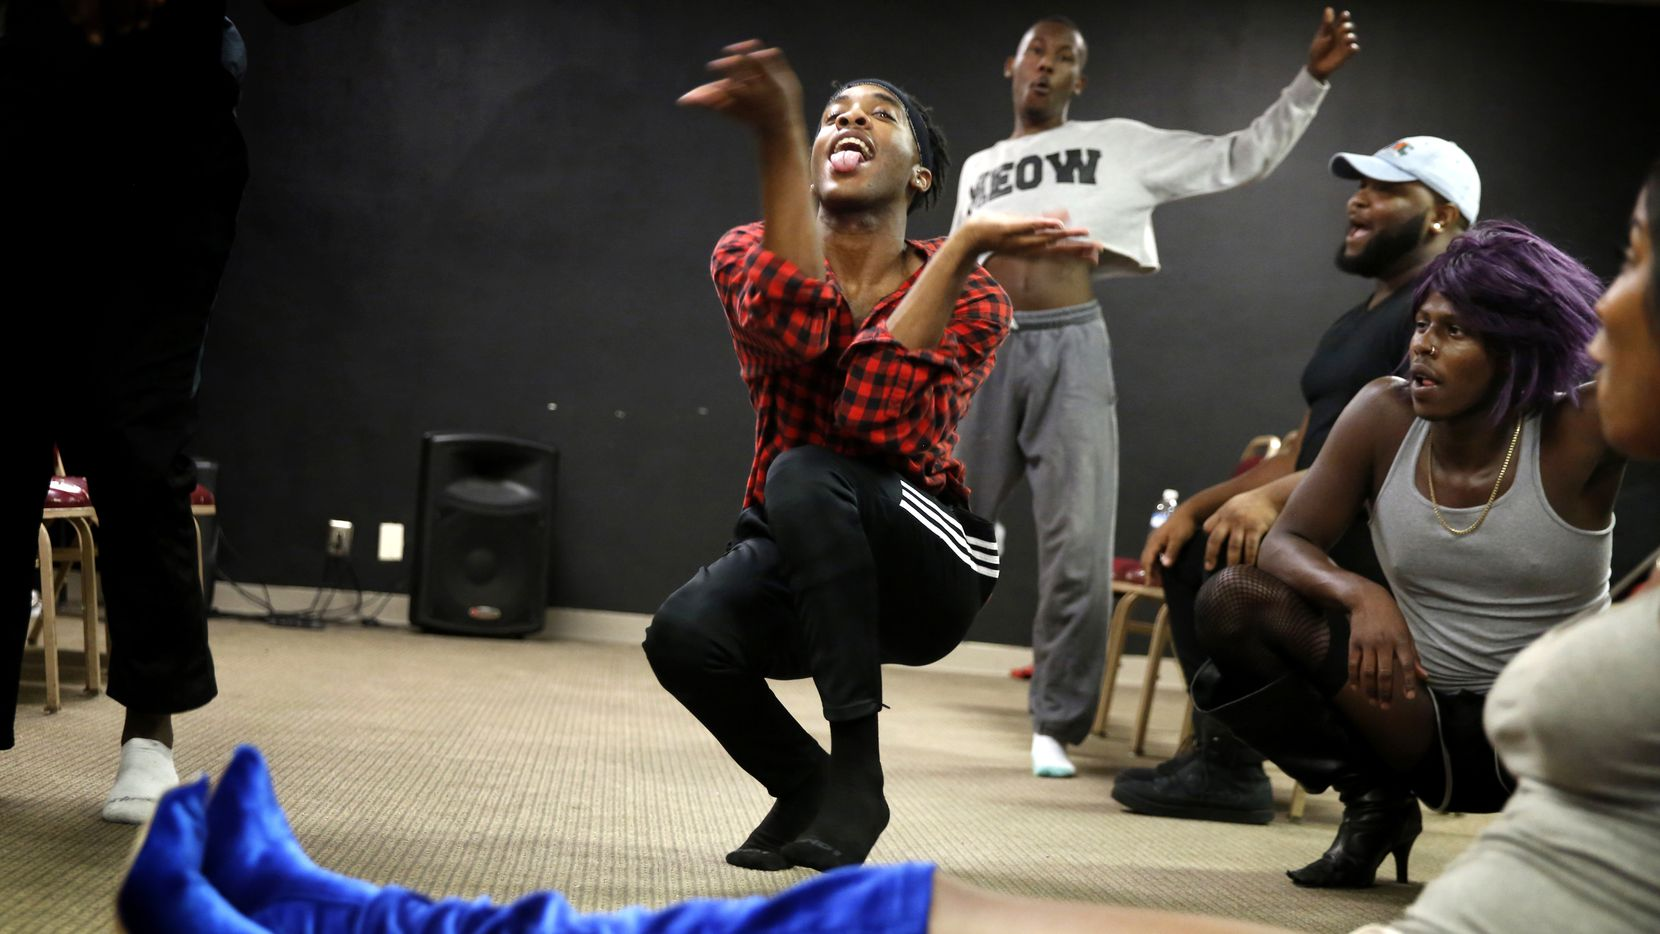 Leondrae Frank (center) vogues with others during a voguing practice at United Black Ellument in Dallas on Aug. 10, 2018. (Rose Baca/The Dallas Morning News)